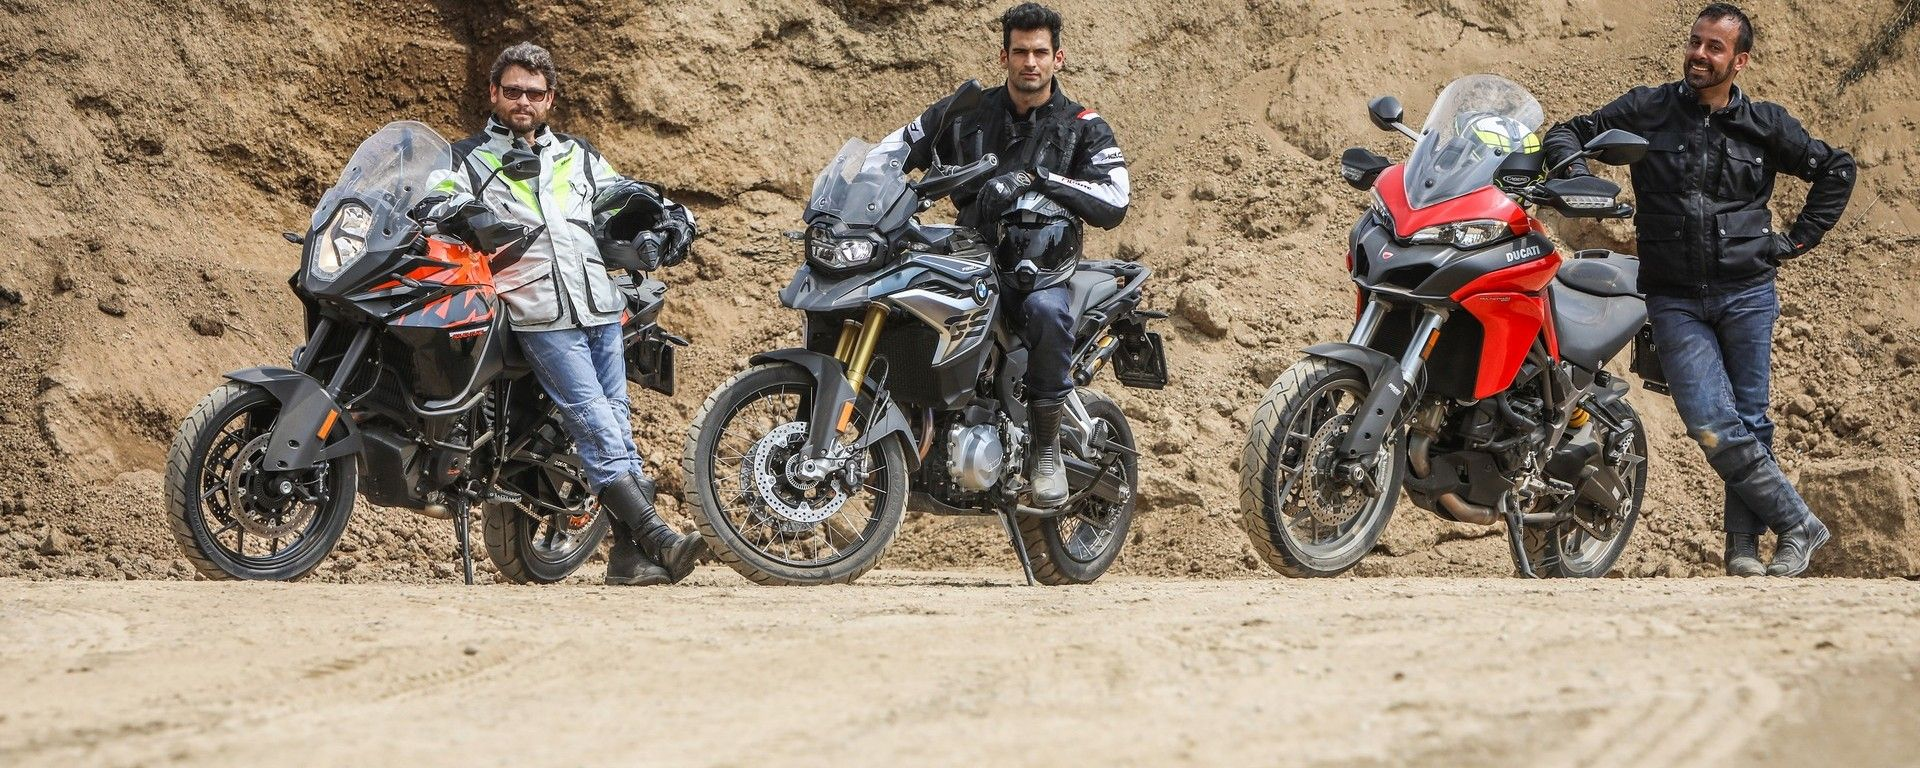 Prova Bmw F 850 Gs Vs Ducati Multistrada 950 Vs Ktm 1090 Adventure